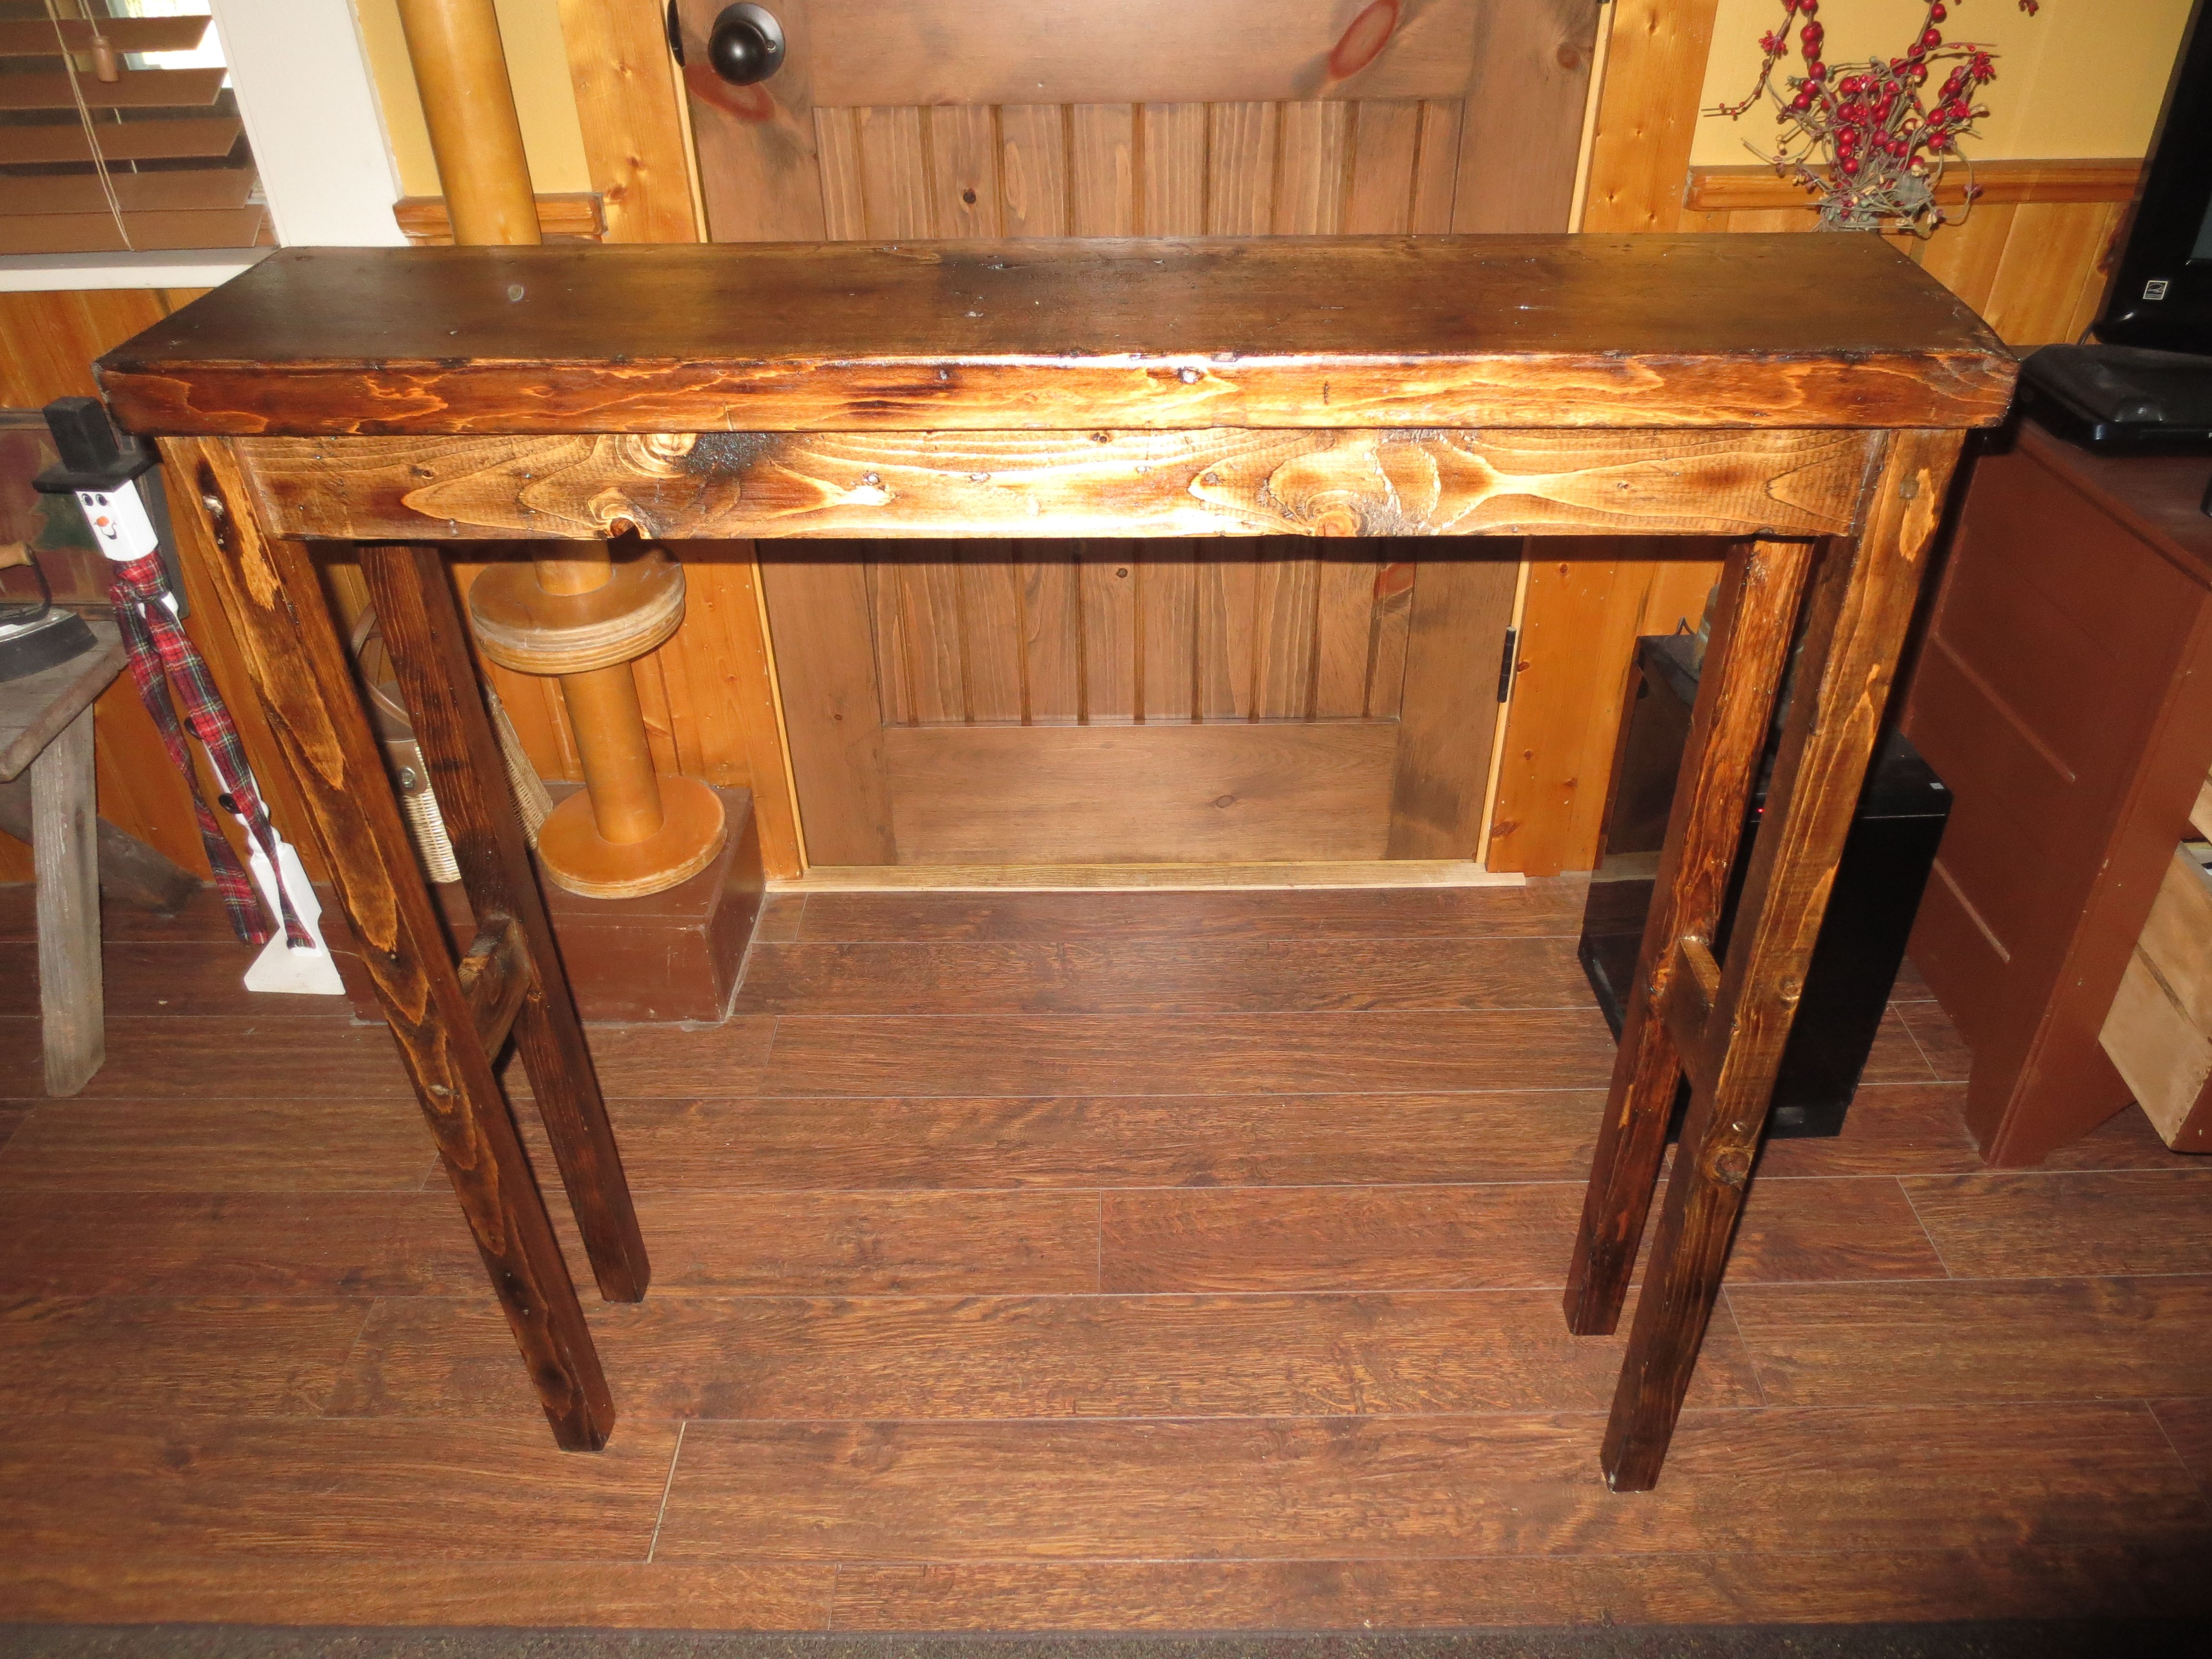 Brilliant Small Rustic Sofa Table Made From Old Beams And Wood 36 Pabps2019 Chair Design Images Pabps2019Com